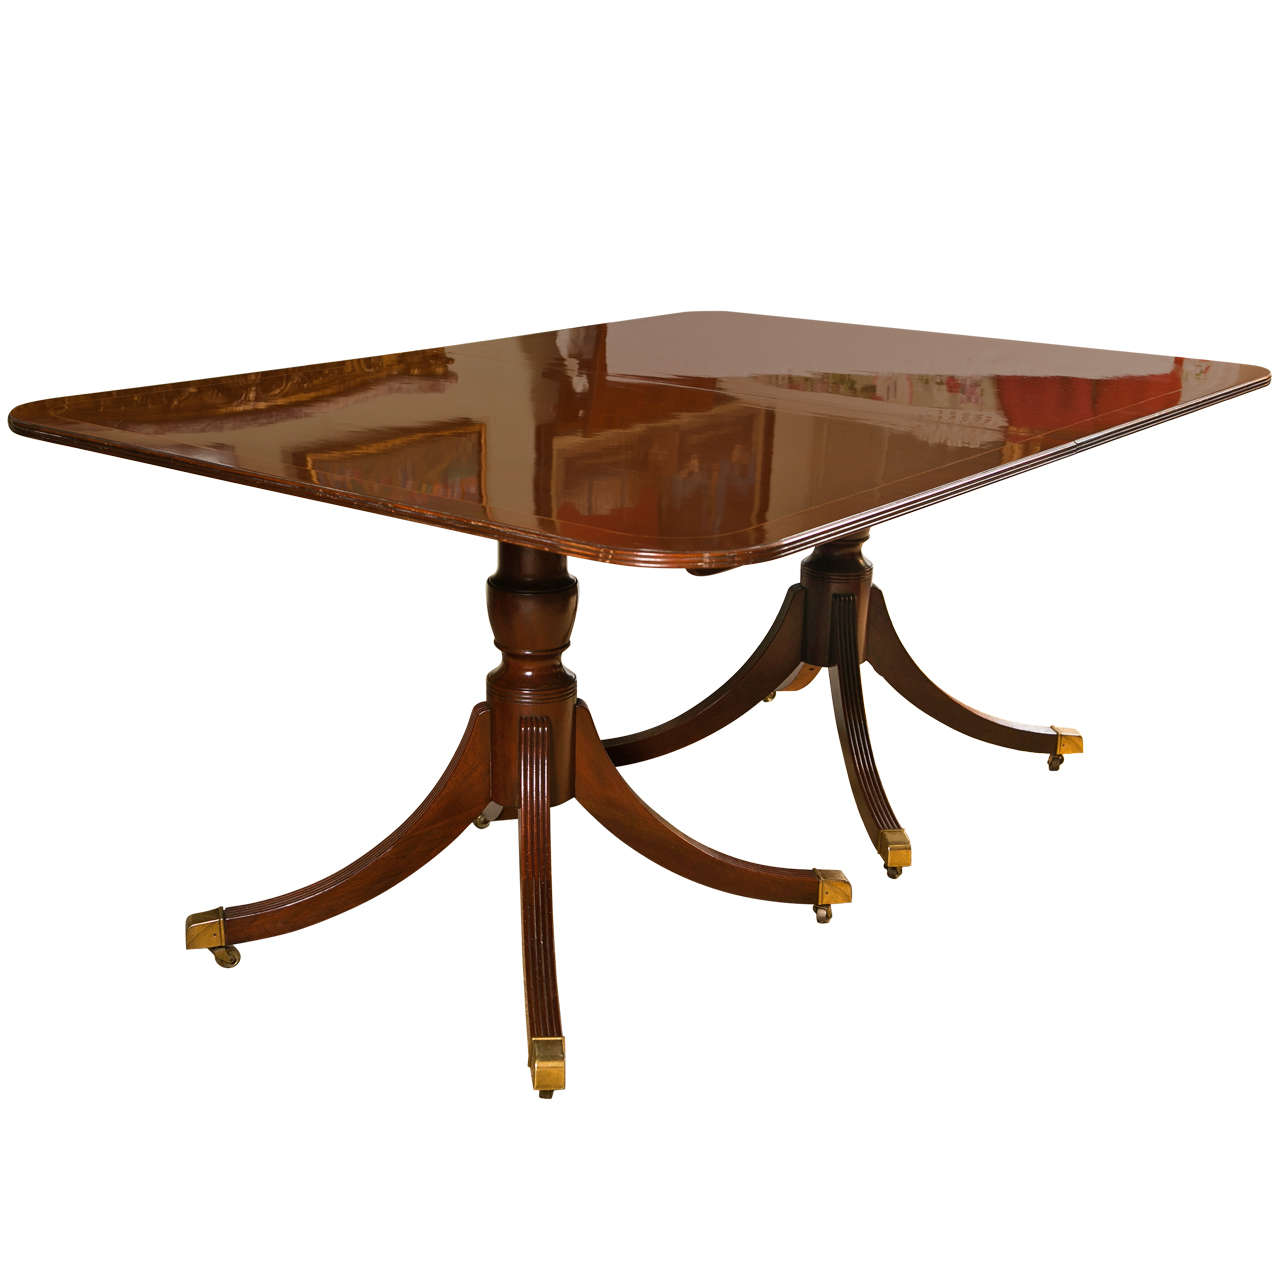 Regency Style Mahogany 2 Leaf Dining Table By Baker For Sale